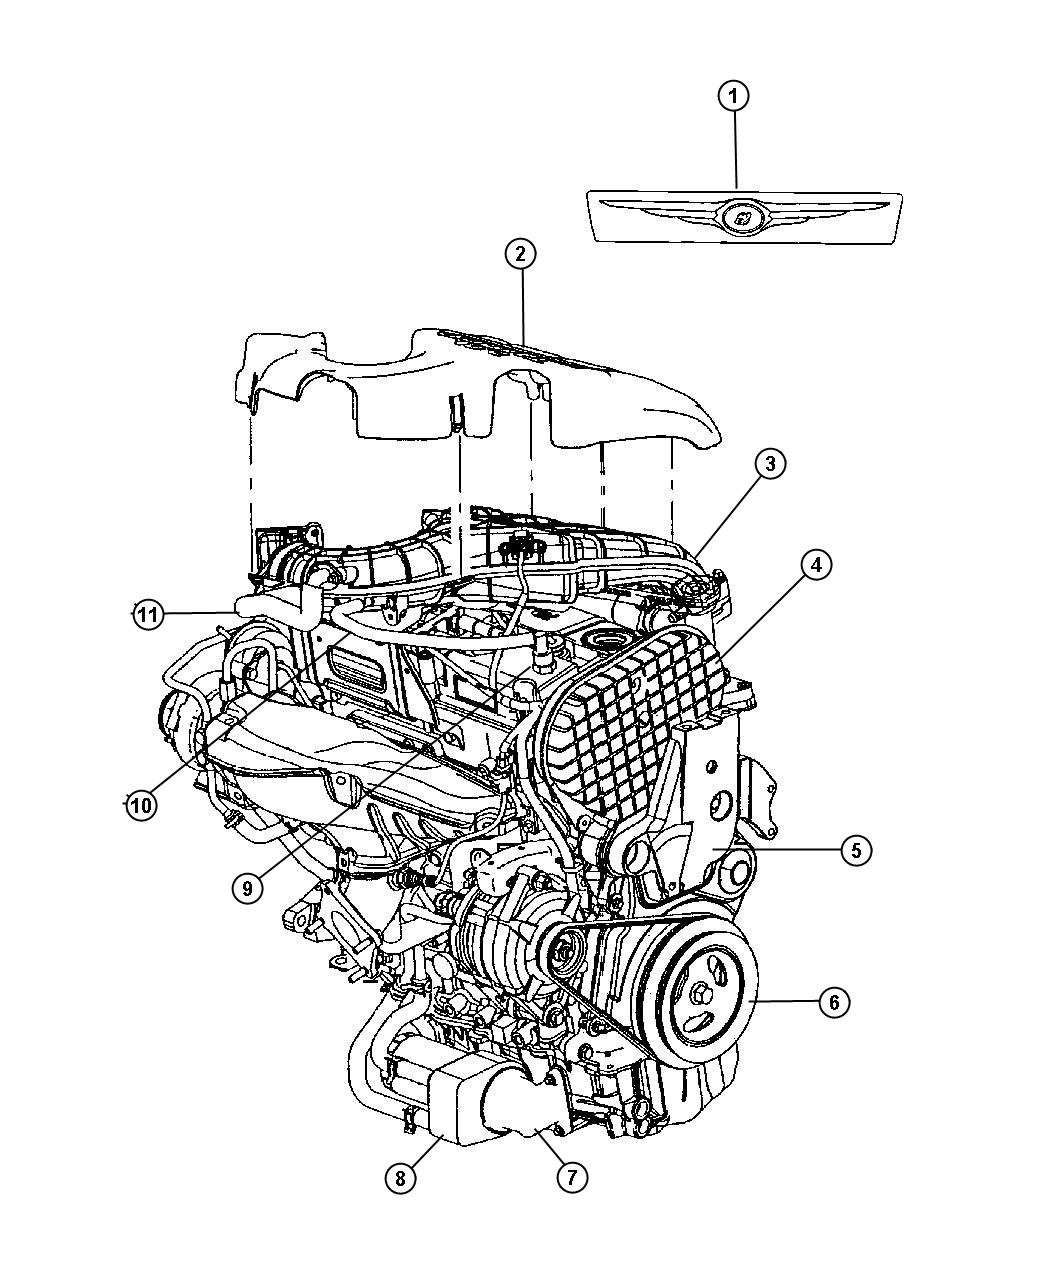 2005 chrysler town country suspension